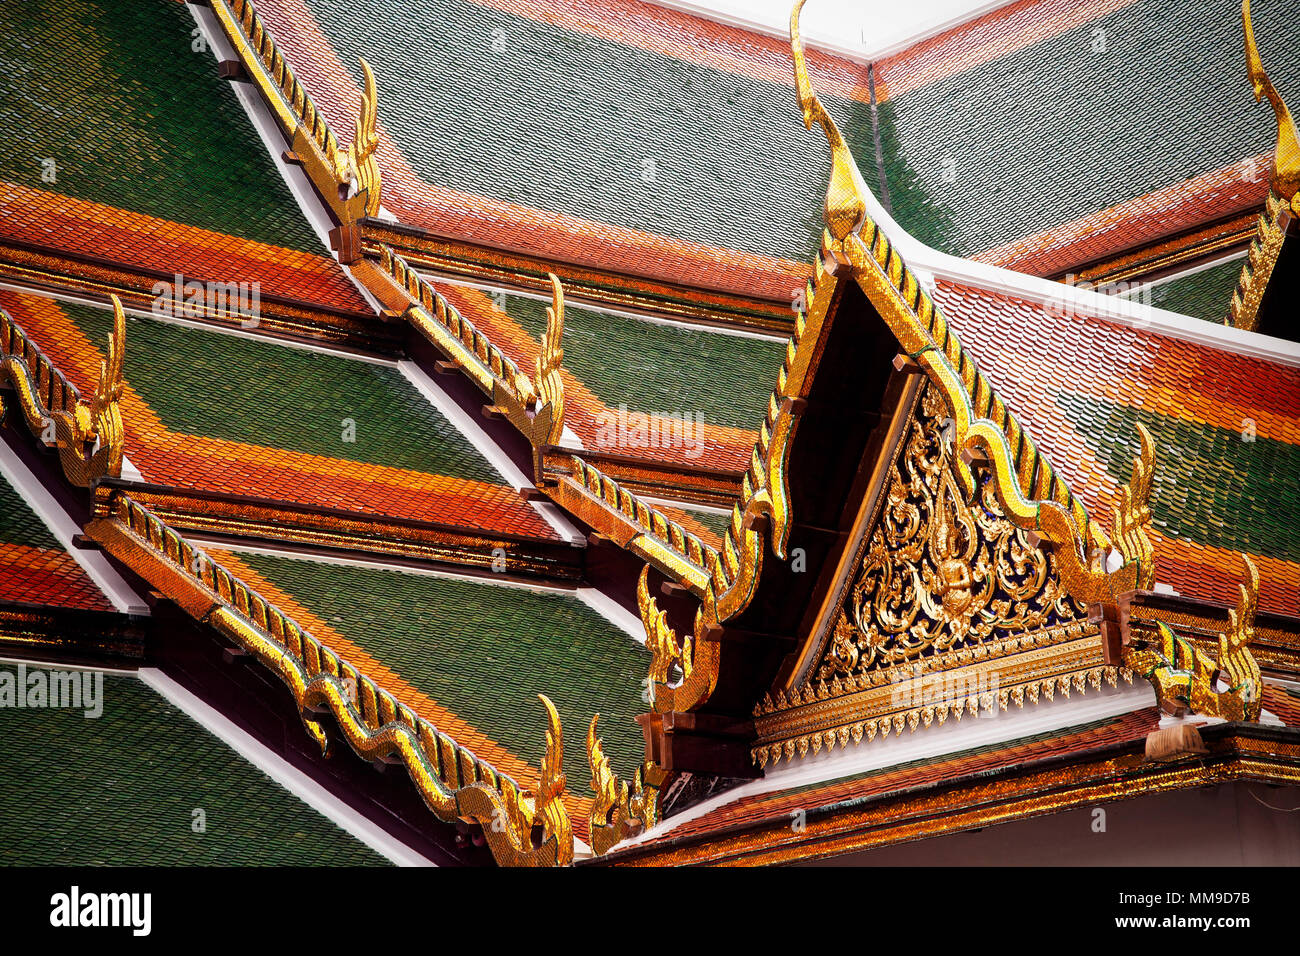 The tiled decorative roof of the Temple of the Emerald Buddha or Uboseth in the Grand Palace complex, Bangkok, Thailand. - Stock Image